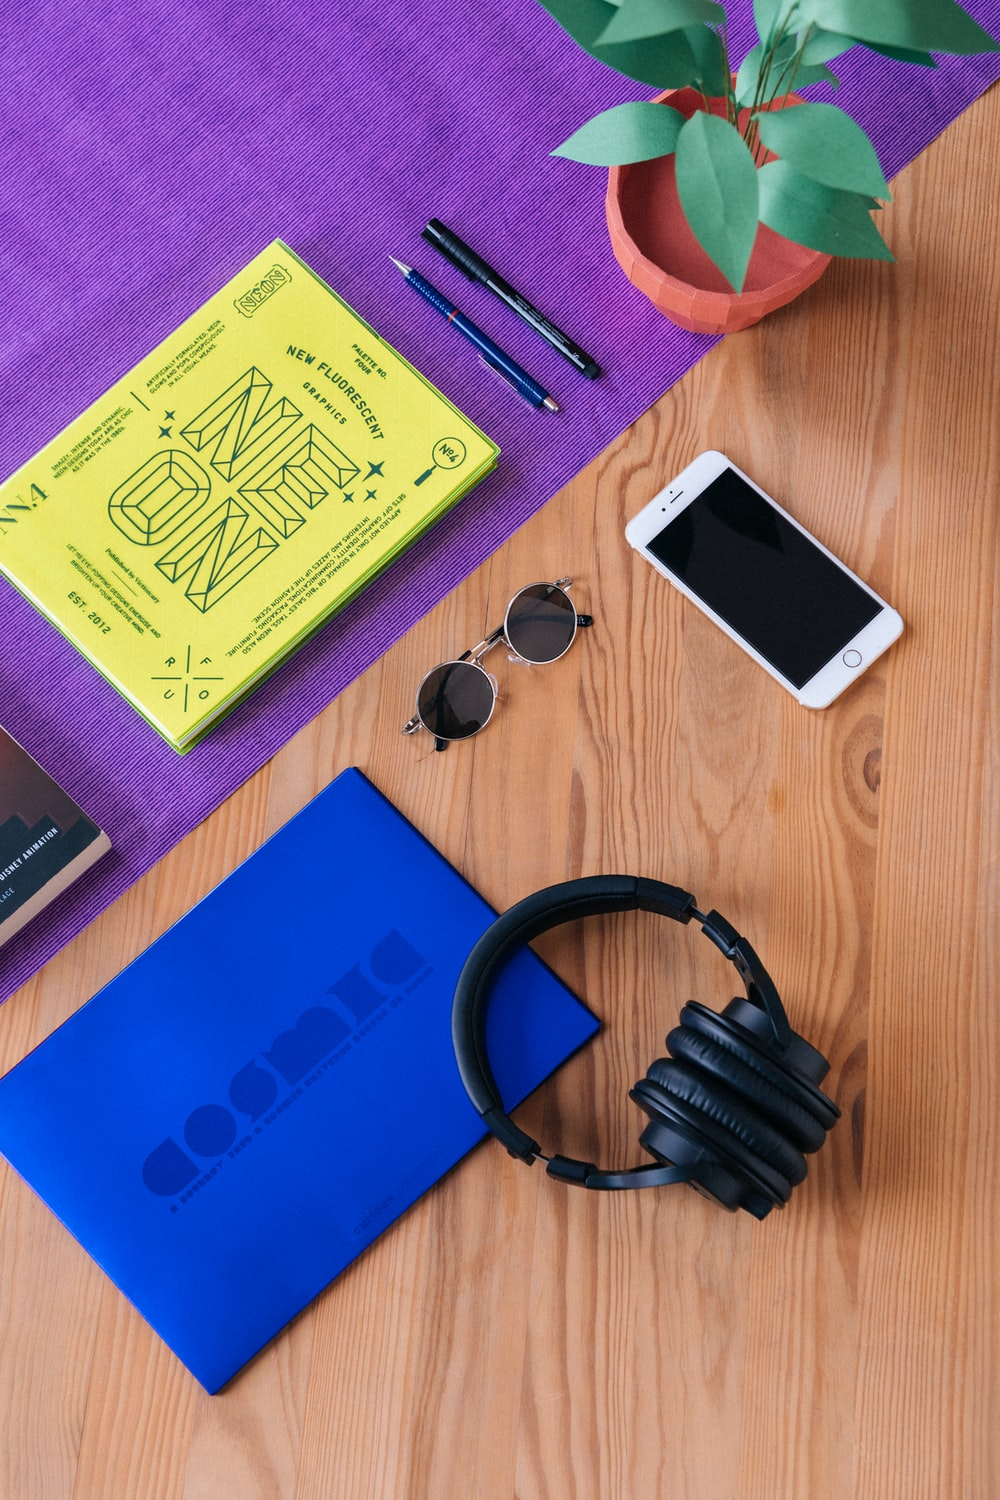 headphones near sunglasses, iPhone 6, and pens on wooden surface